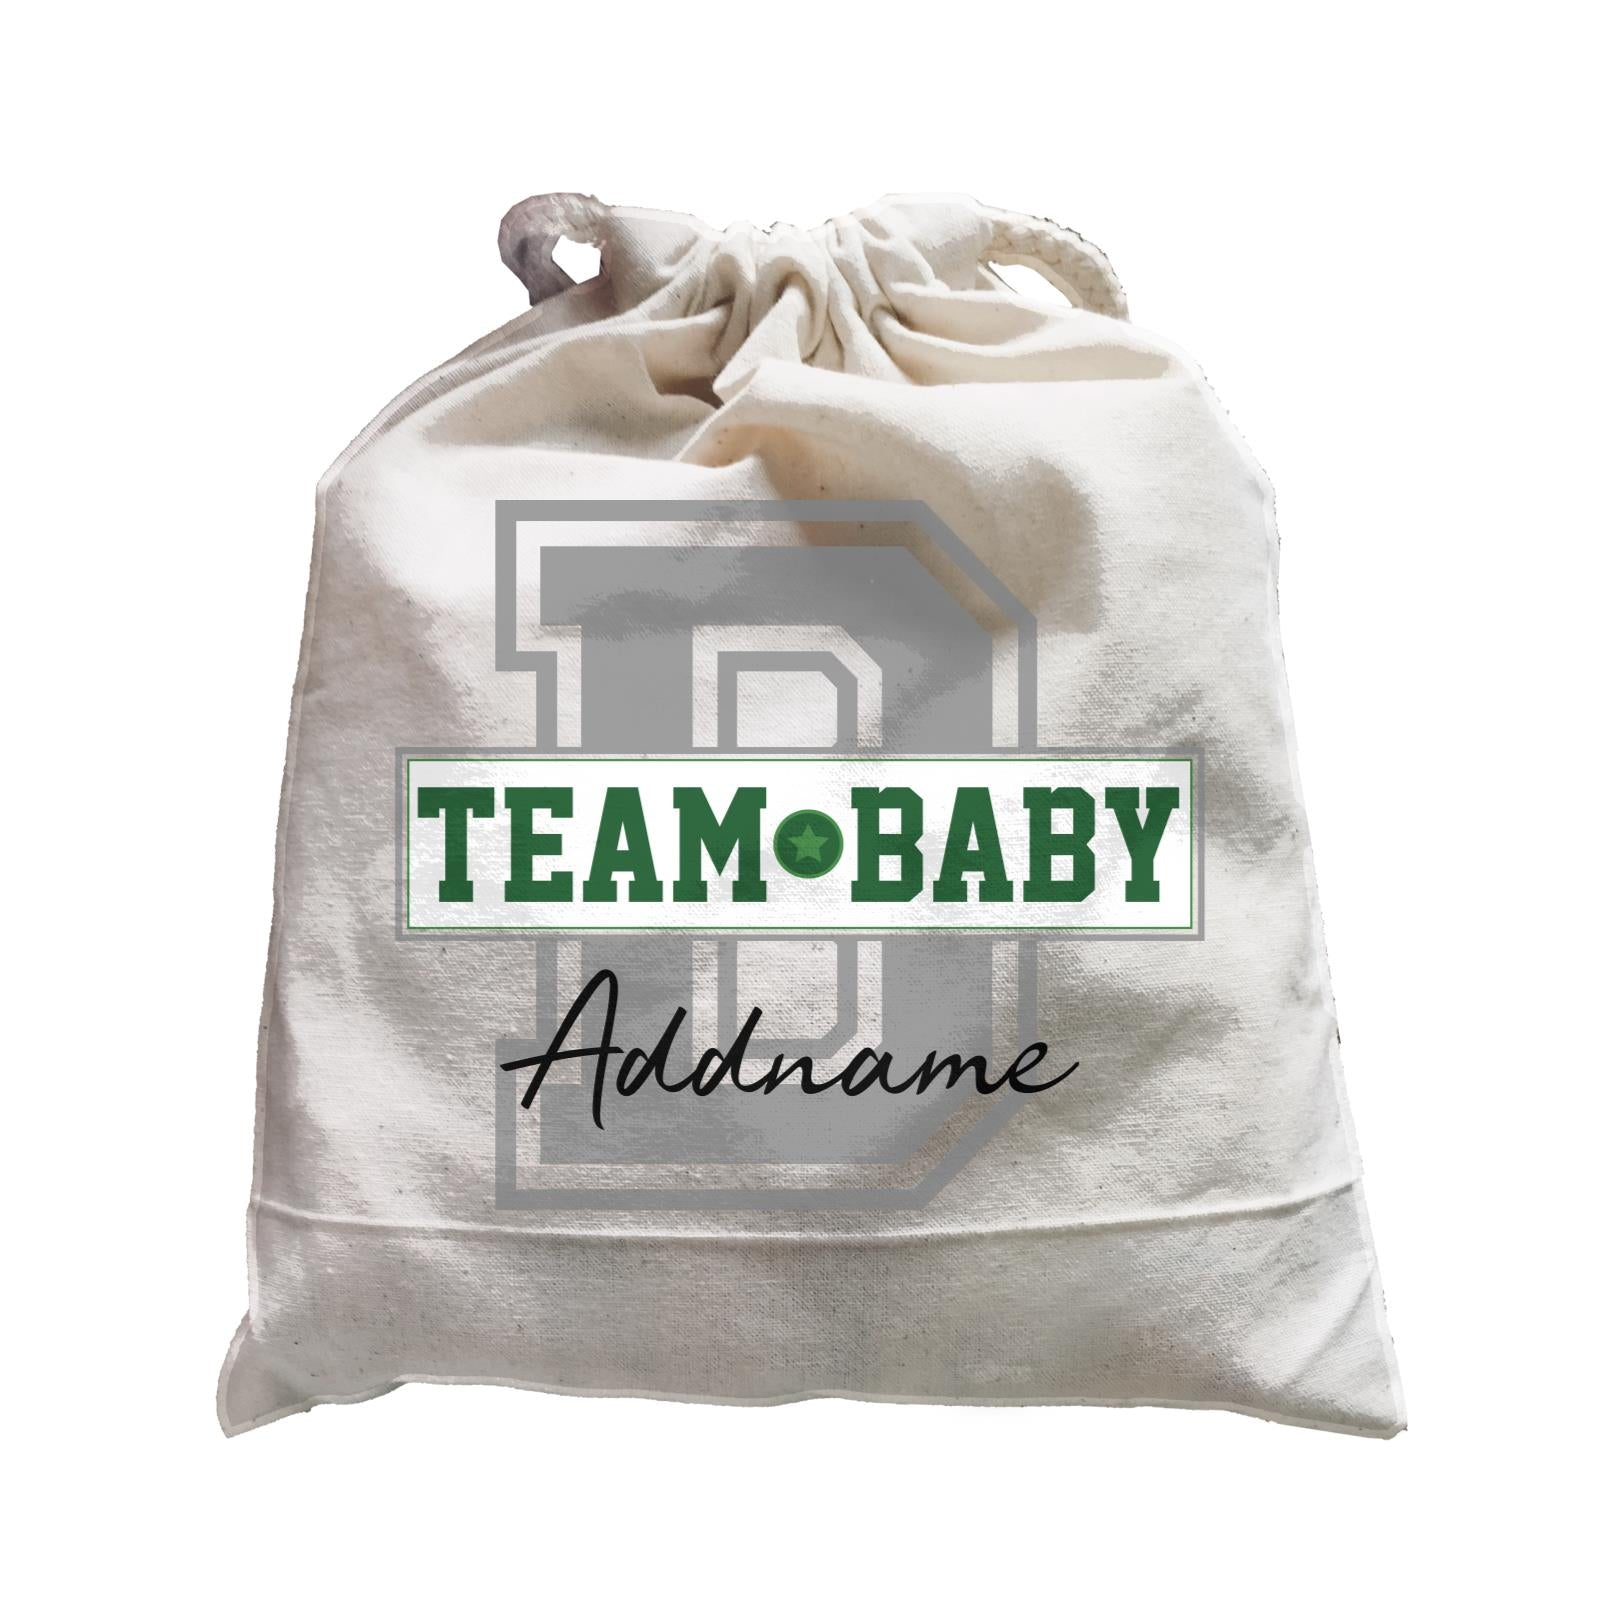 Team Baby Addname Satchel